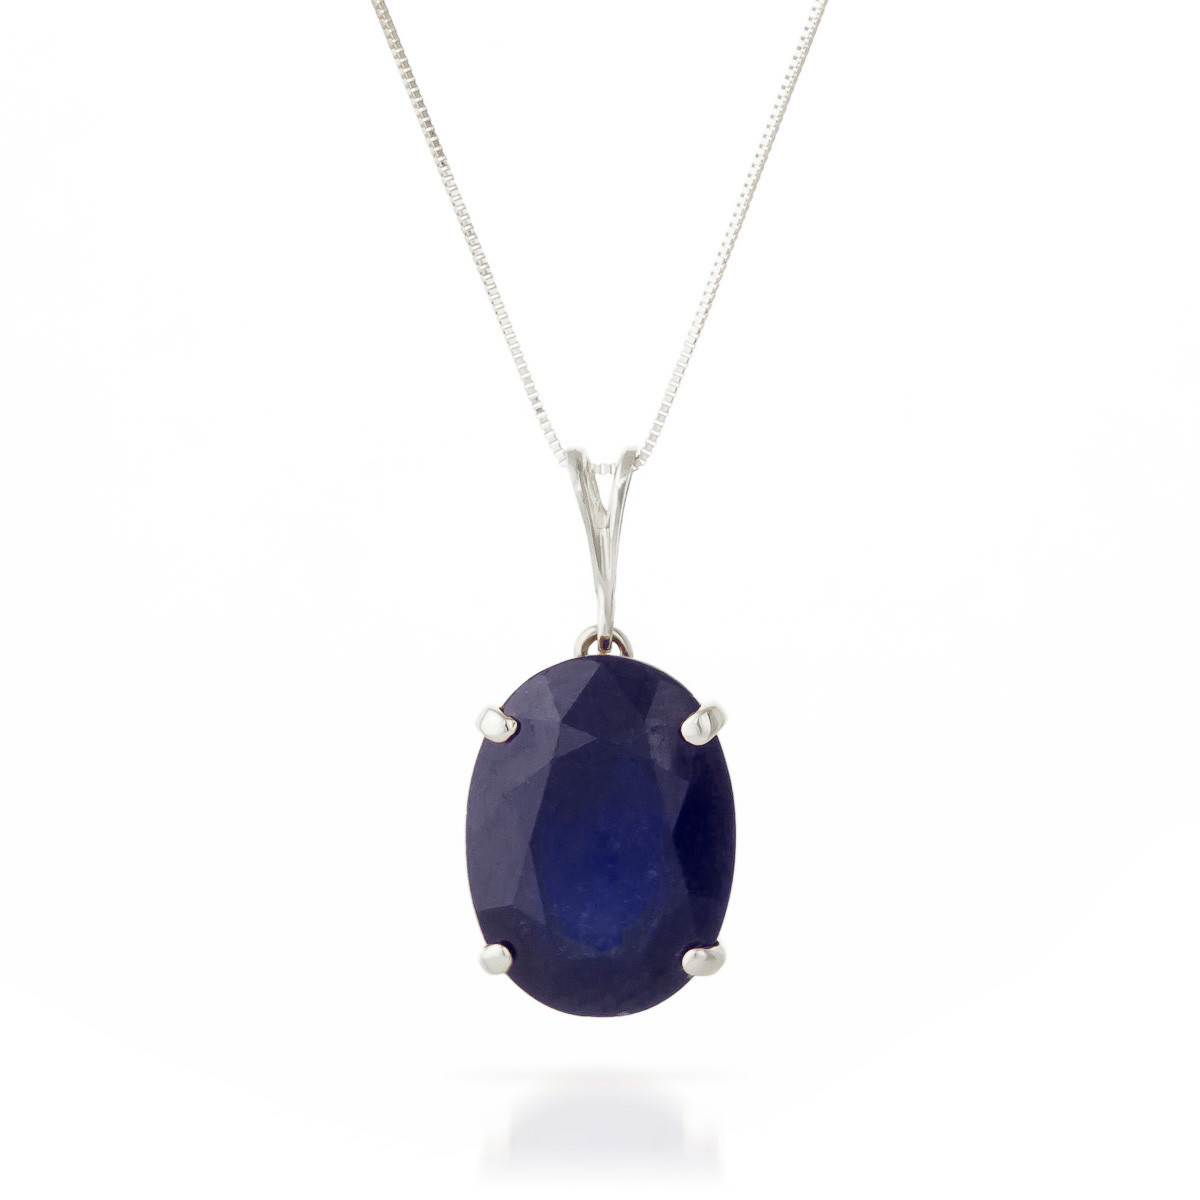 Sapphire oval pendant necklace 85 ct in 9ct white gold 2553w qp sapphire oval pendant necklace 85 ct in 9ct white gold aloadofball Choice Image